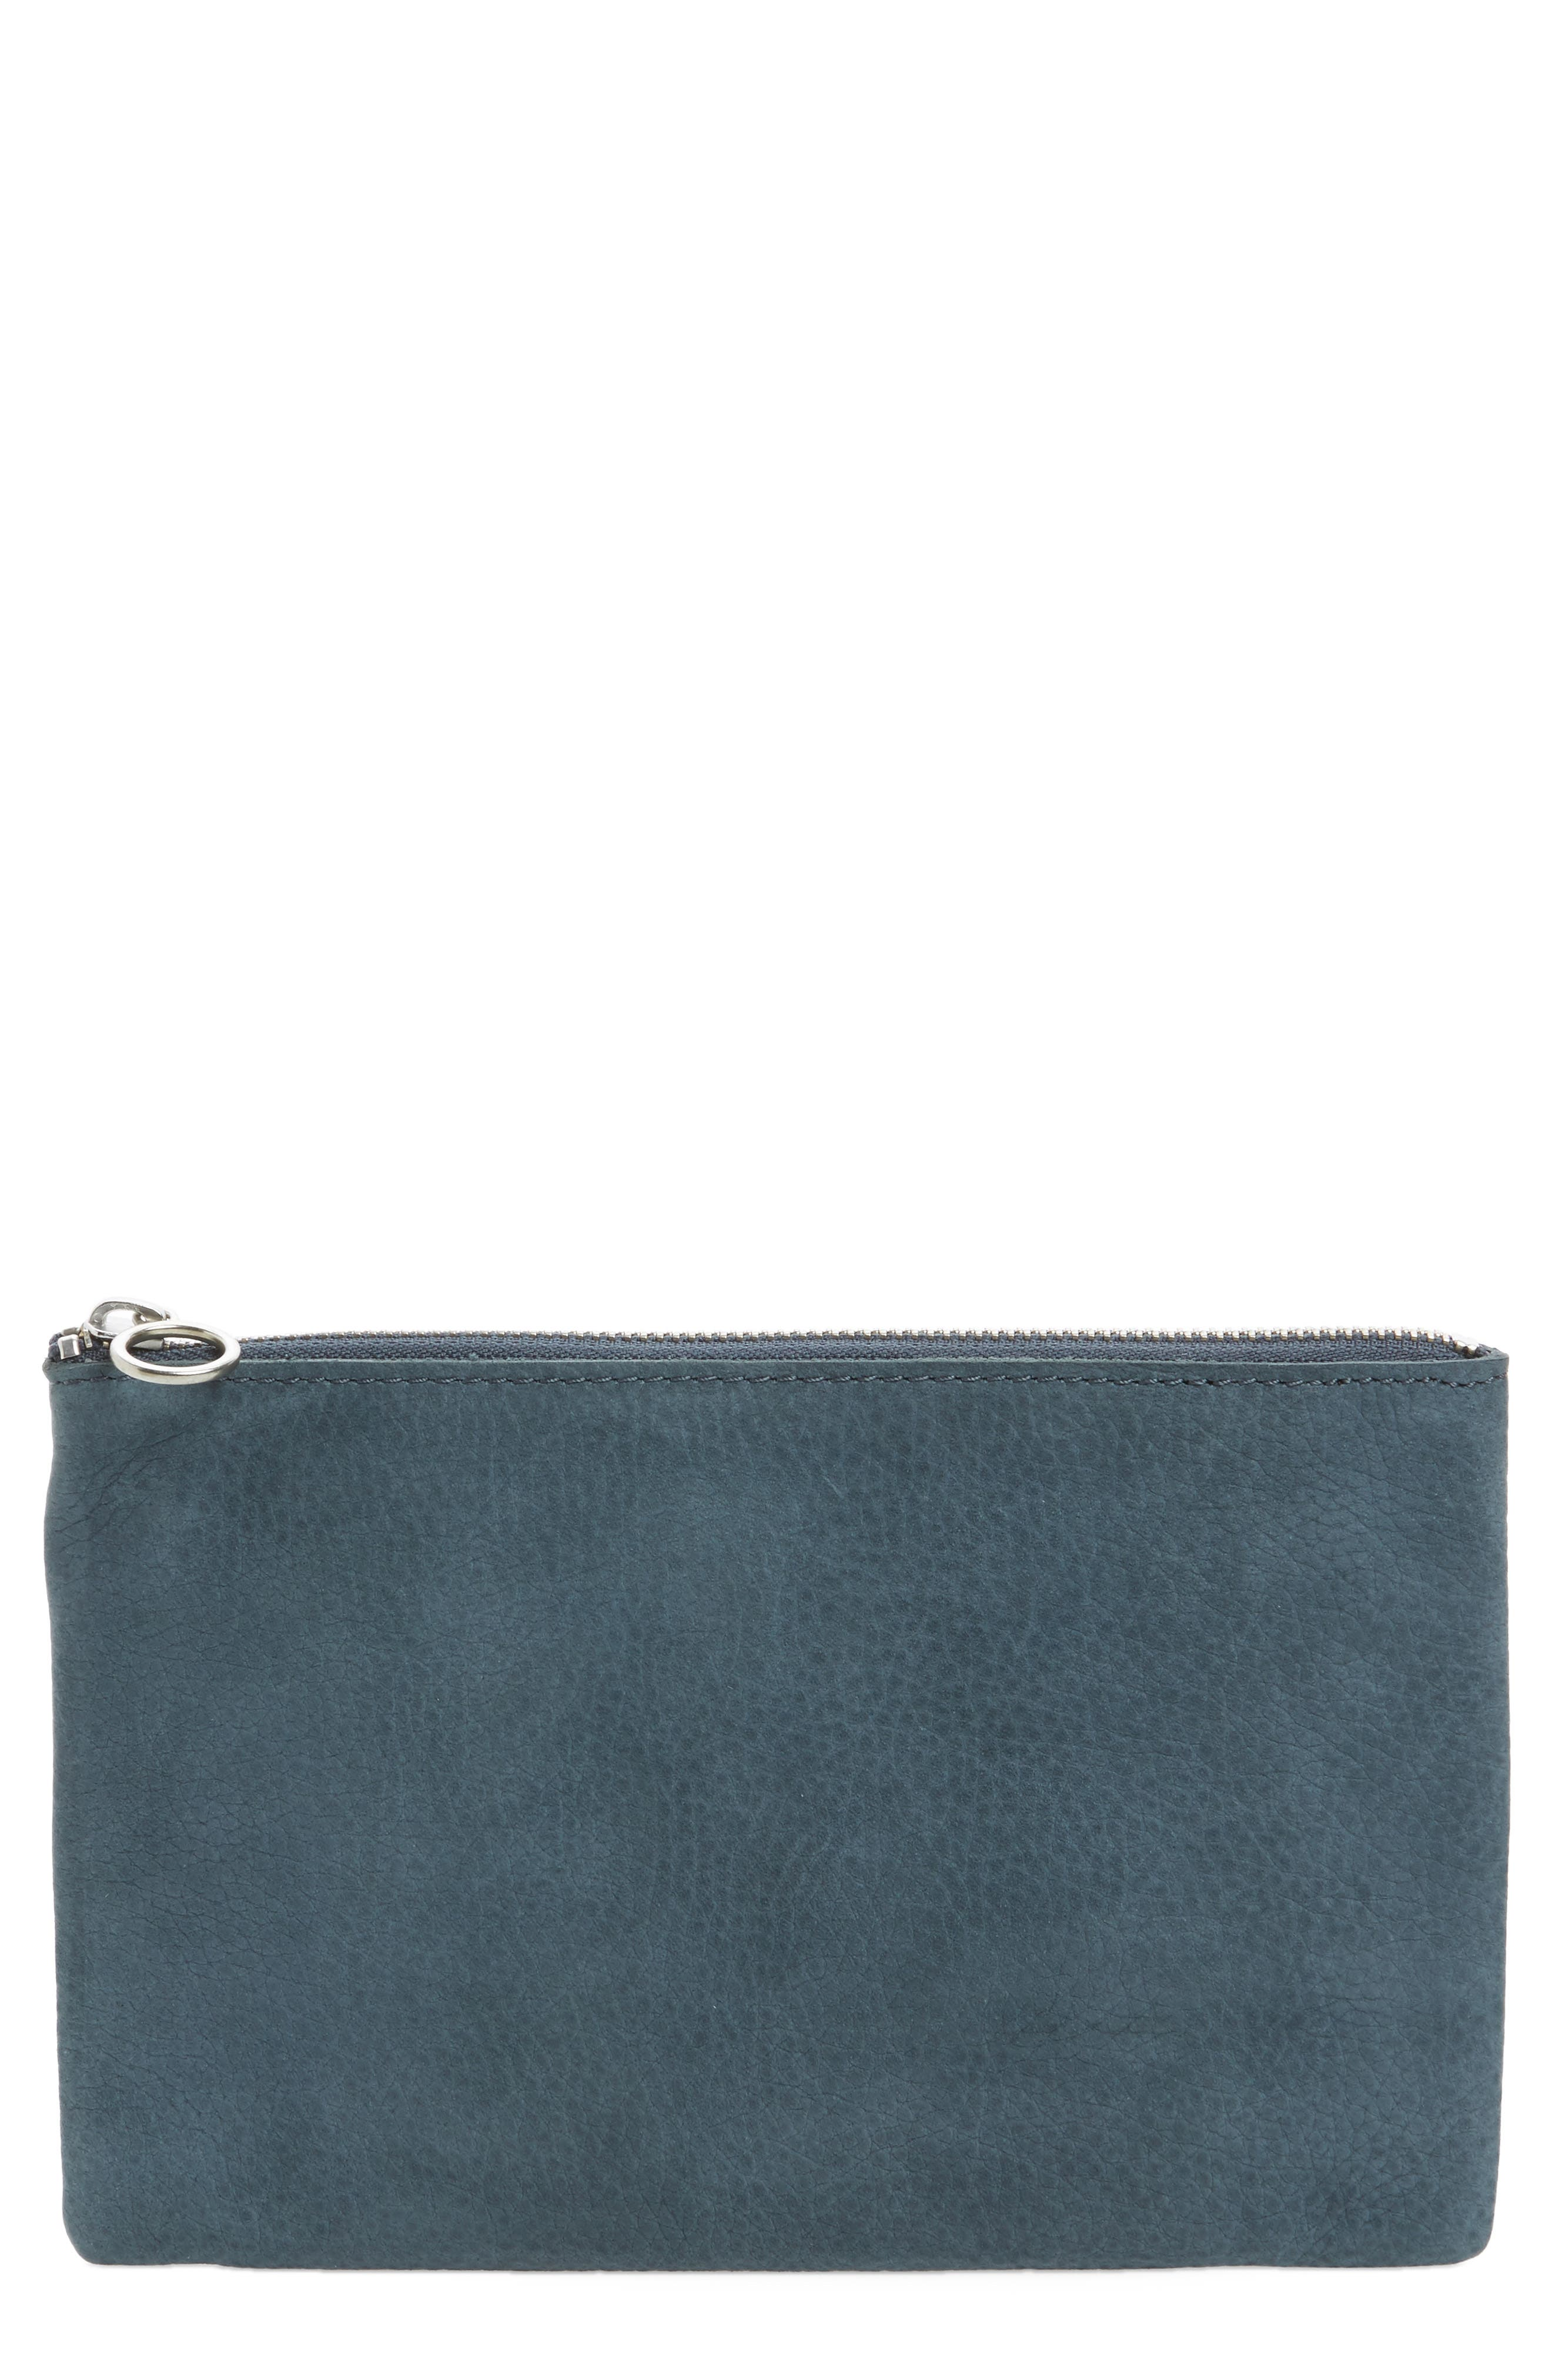 Madewell Medium Leather Pouch